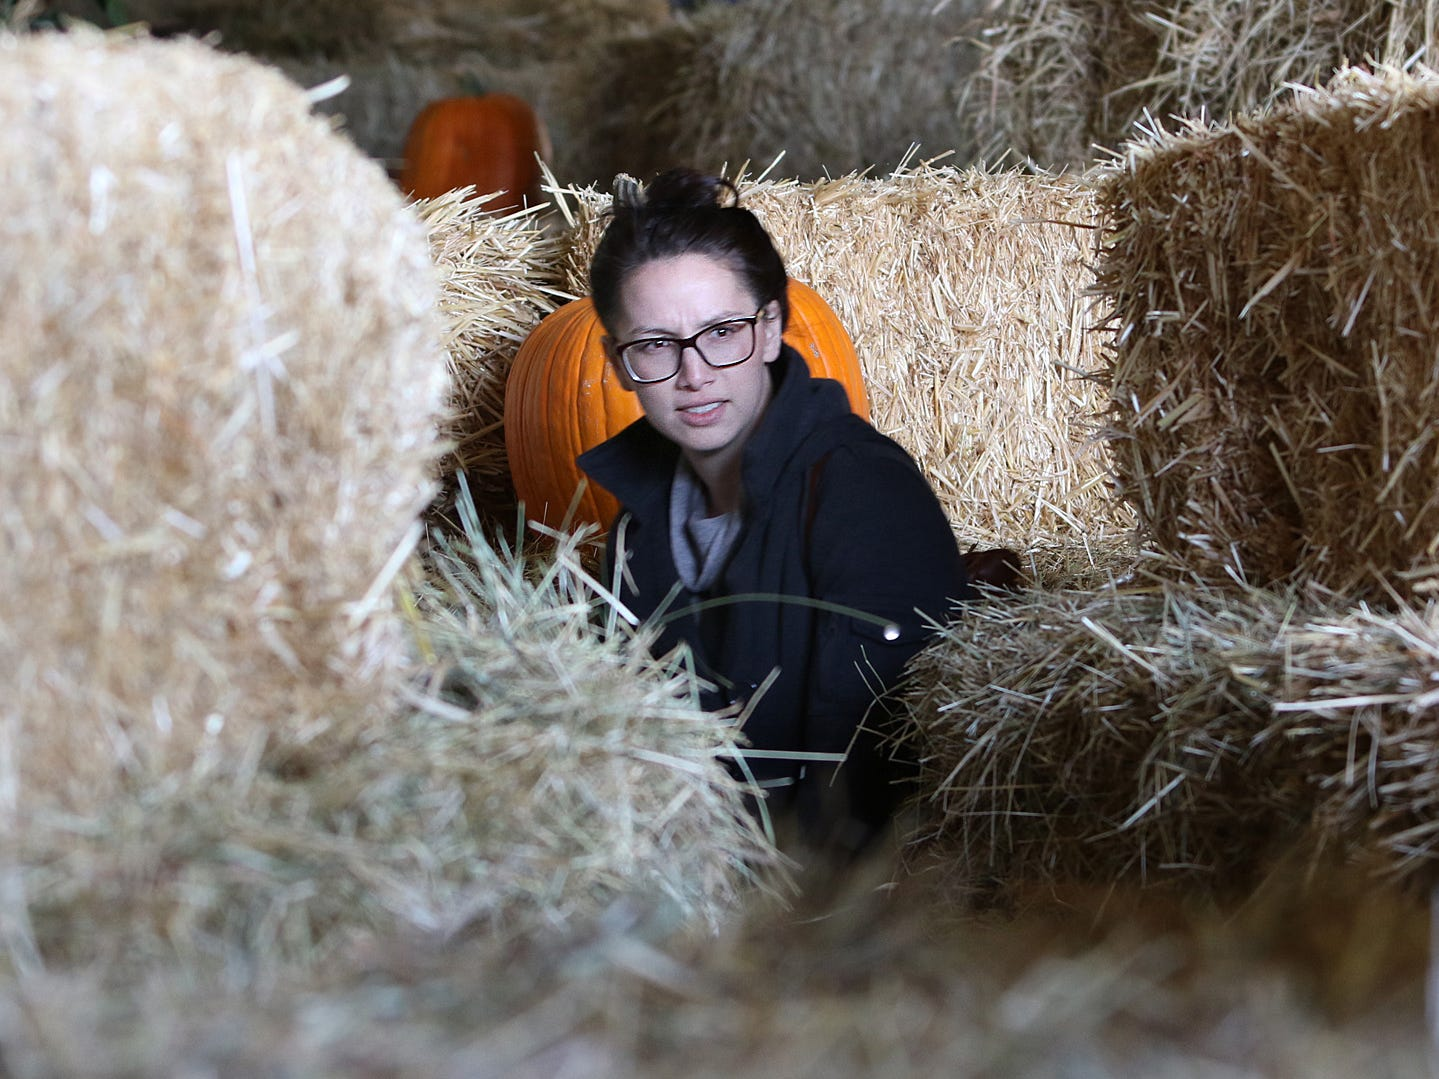 The hay maze is an entertaining exercise for pumpkin patch visitors of all ages.